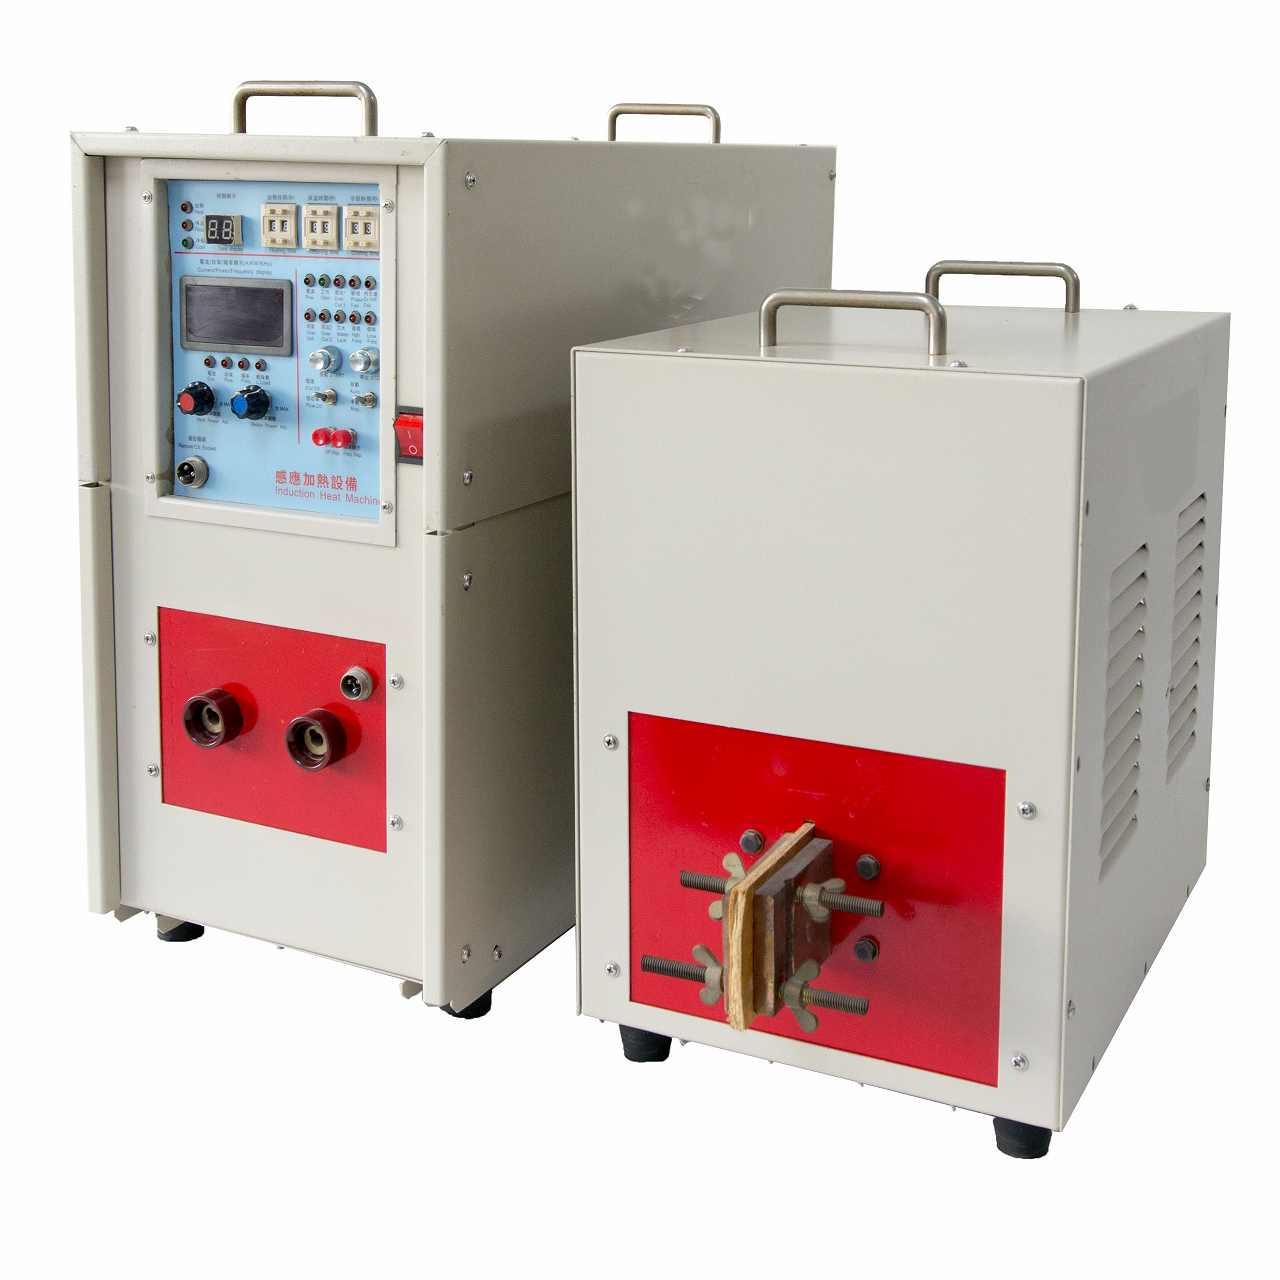 induction heater manufacturers in india.jpg